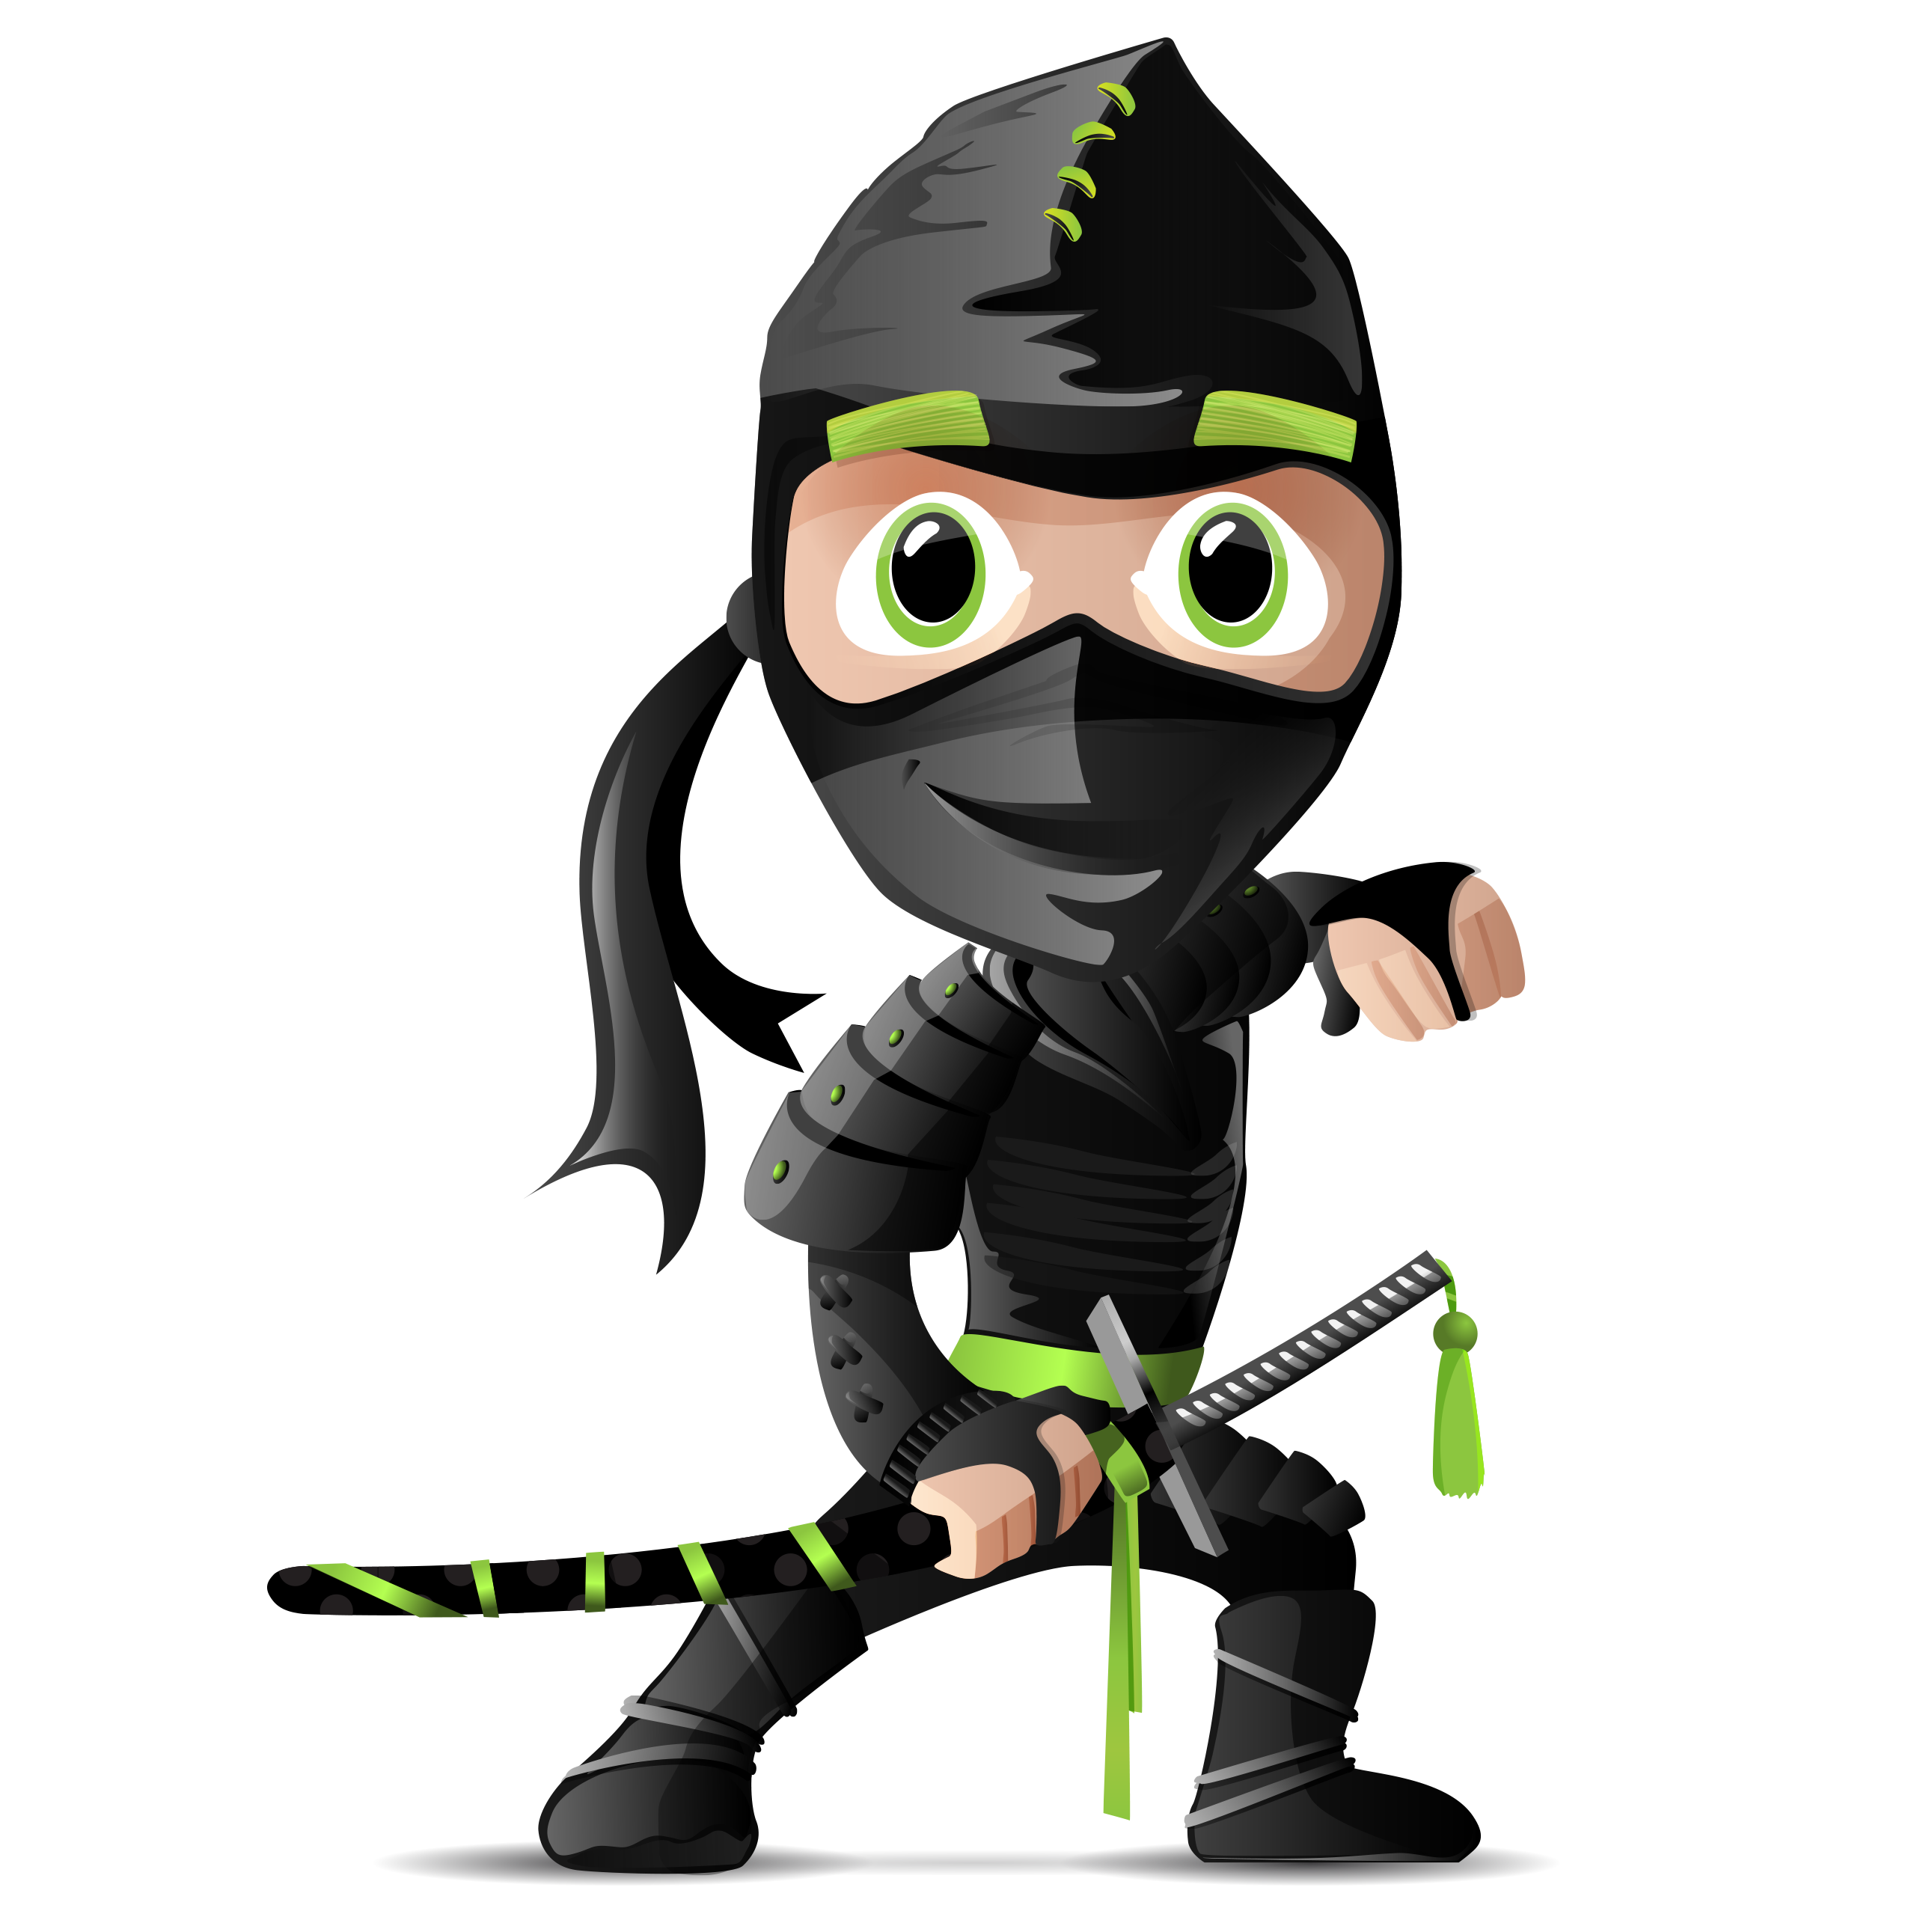 Japanese clipart character. Ninja cartoon clip art